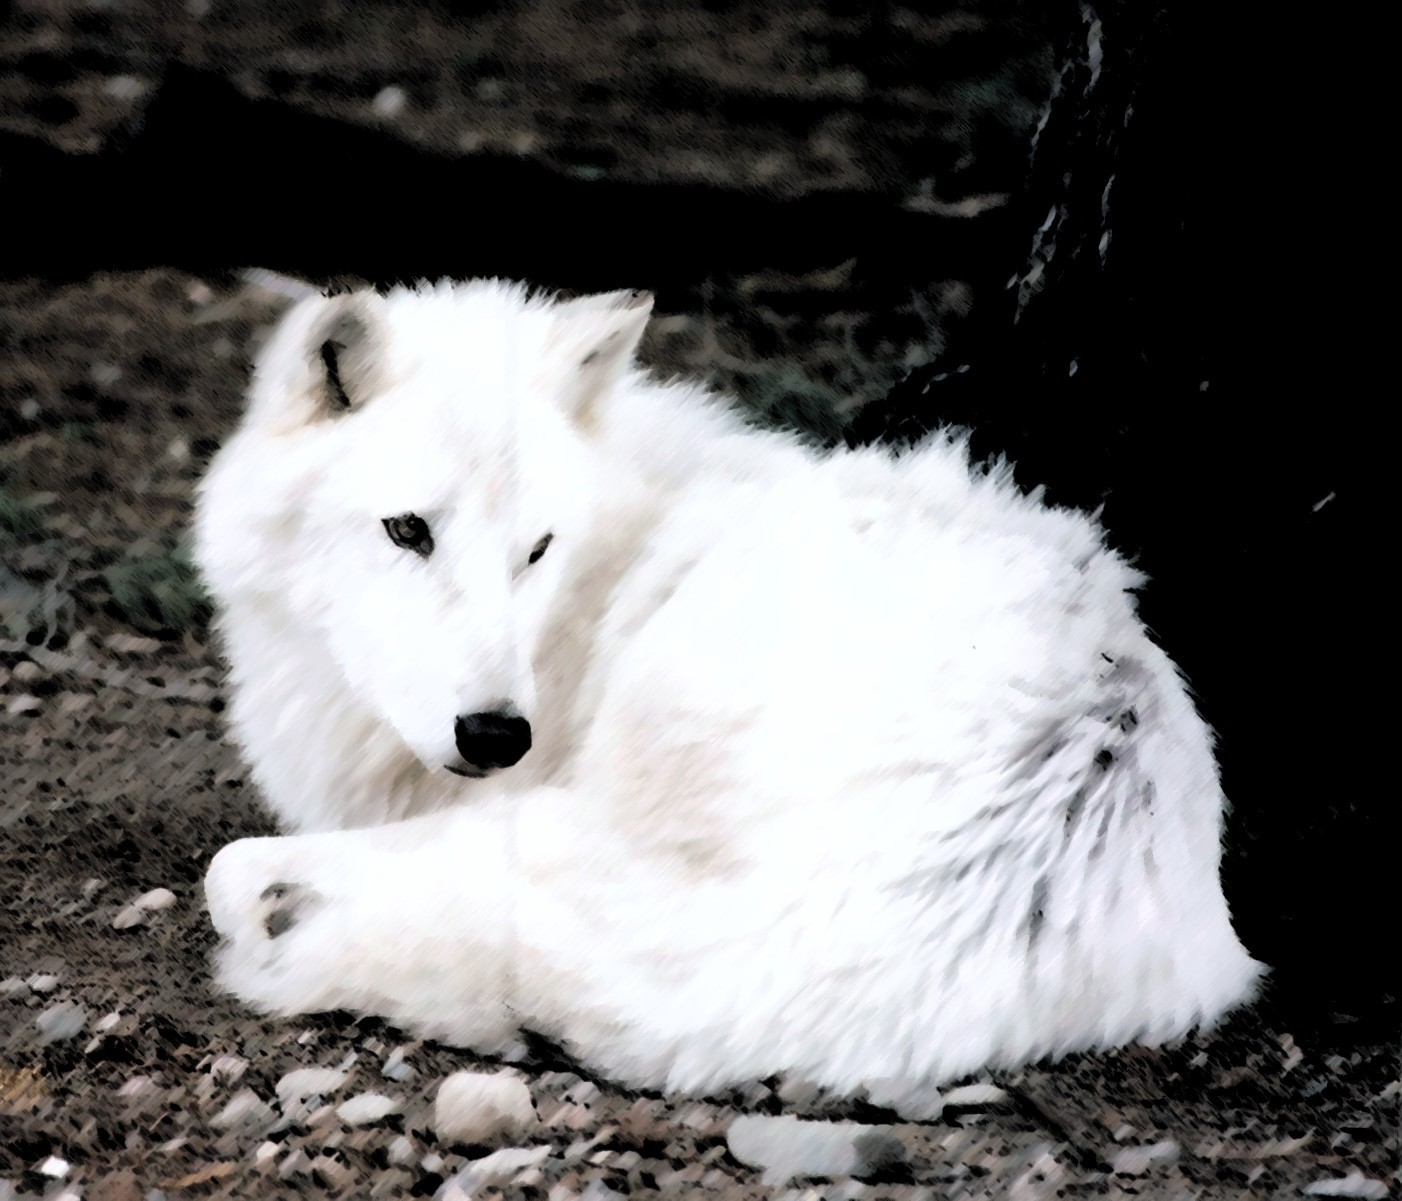 Frost hunter shes a beautiful white wolf hses wfit and caring she